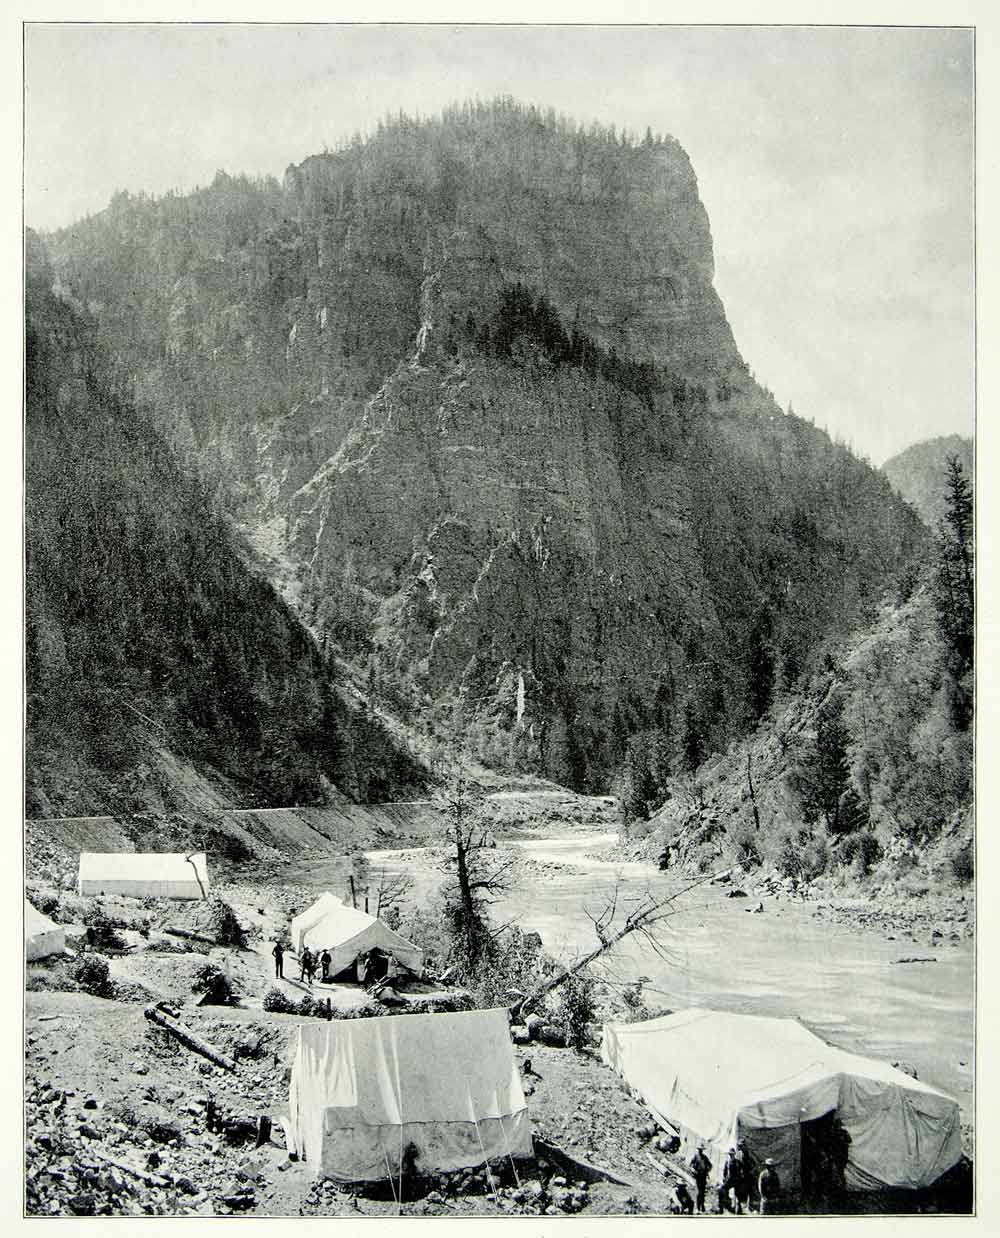 1894 Print Historic Silver Mining Camp Nevada Western Frontier River Bank AC1